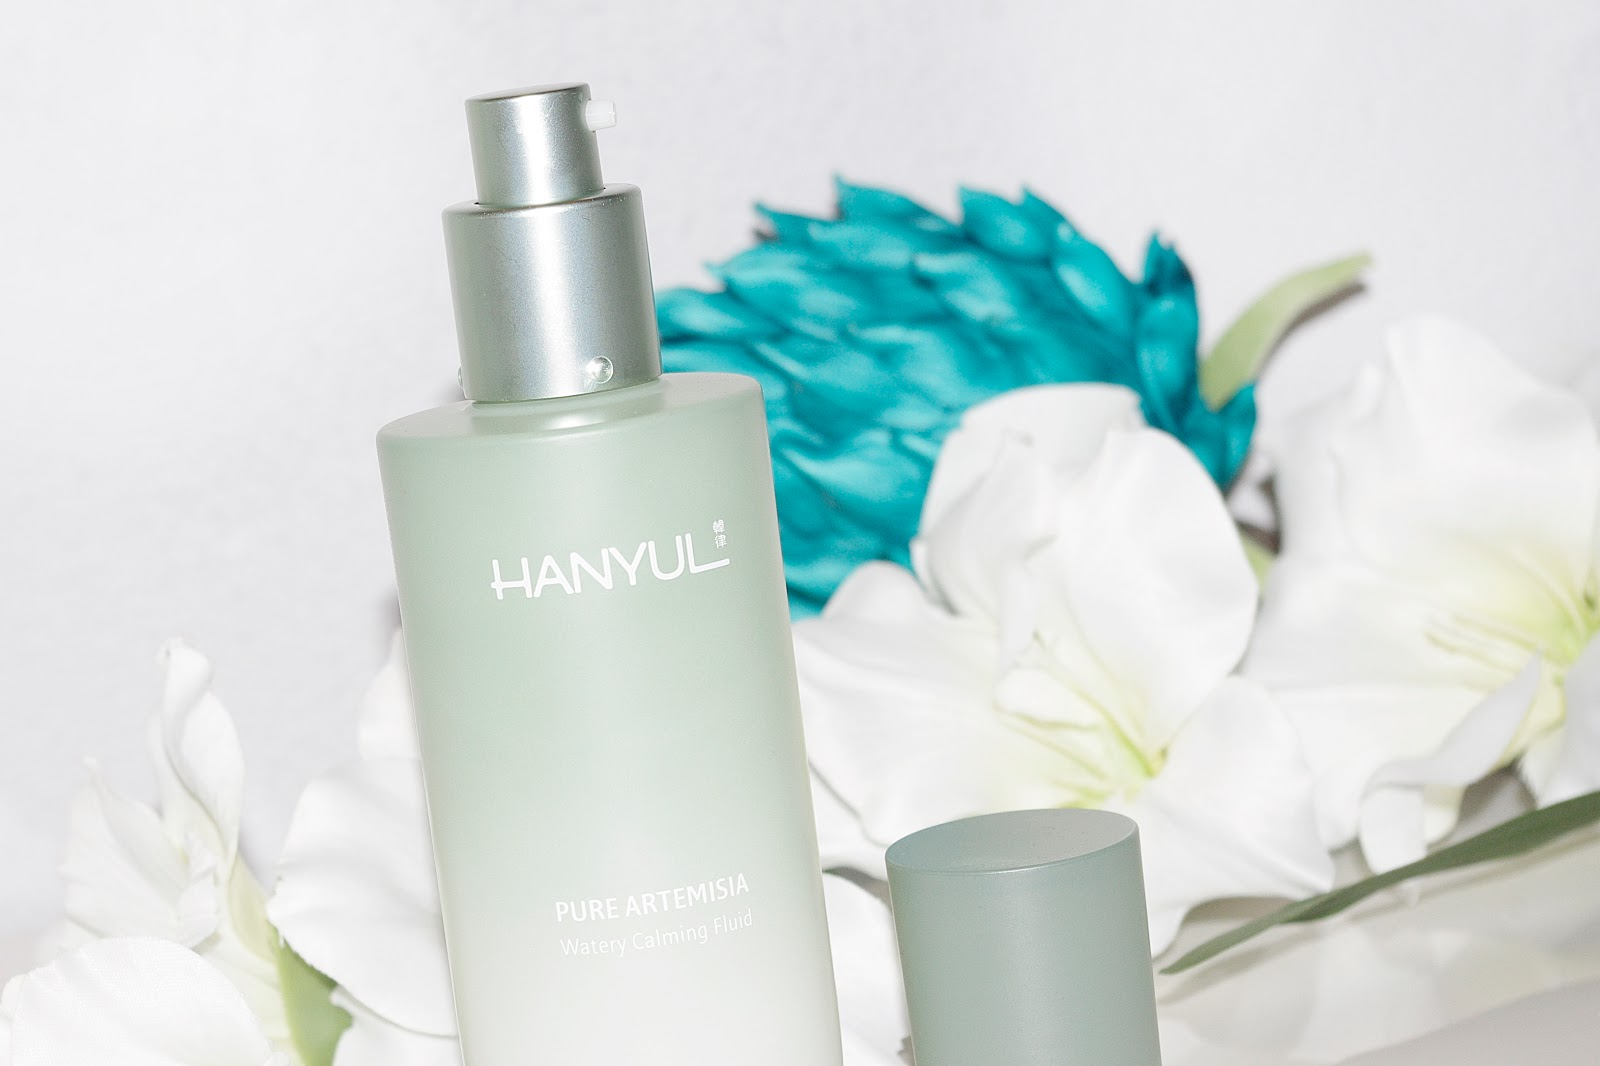 Hanyul Watery Calming Fluid